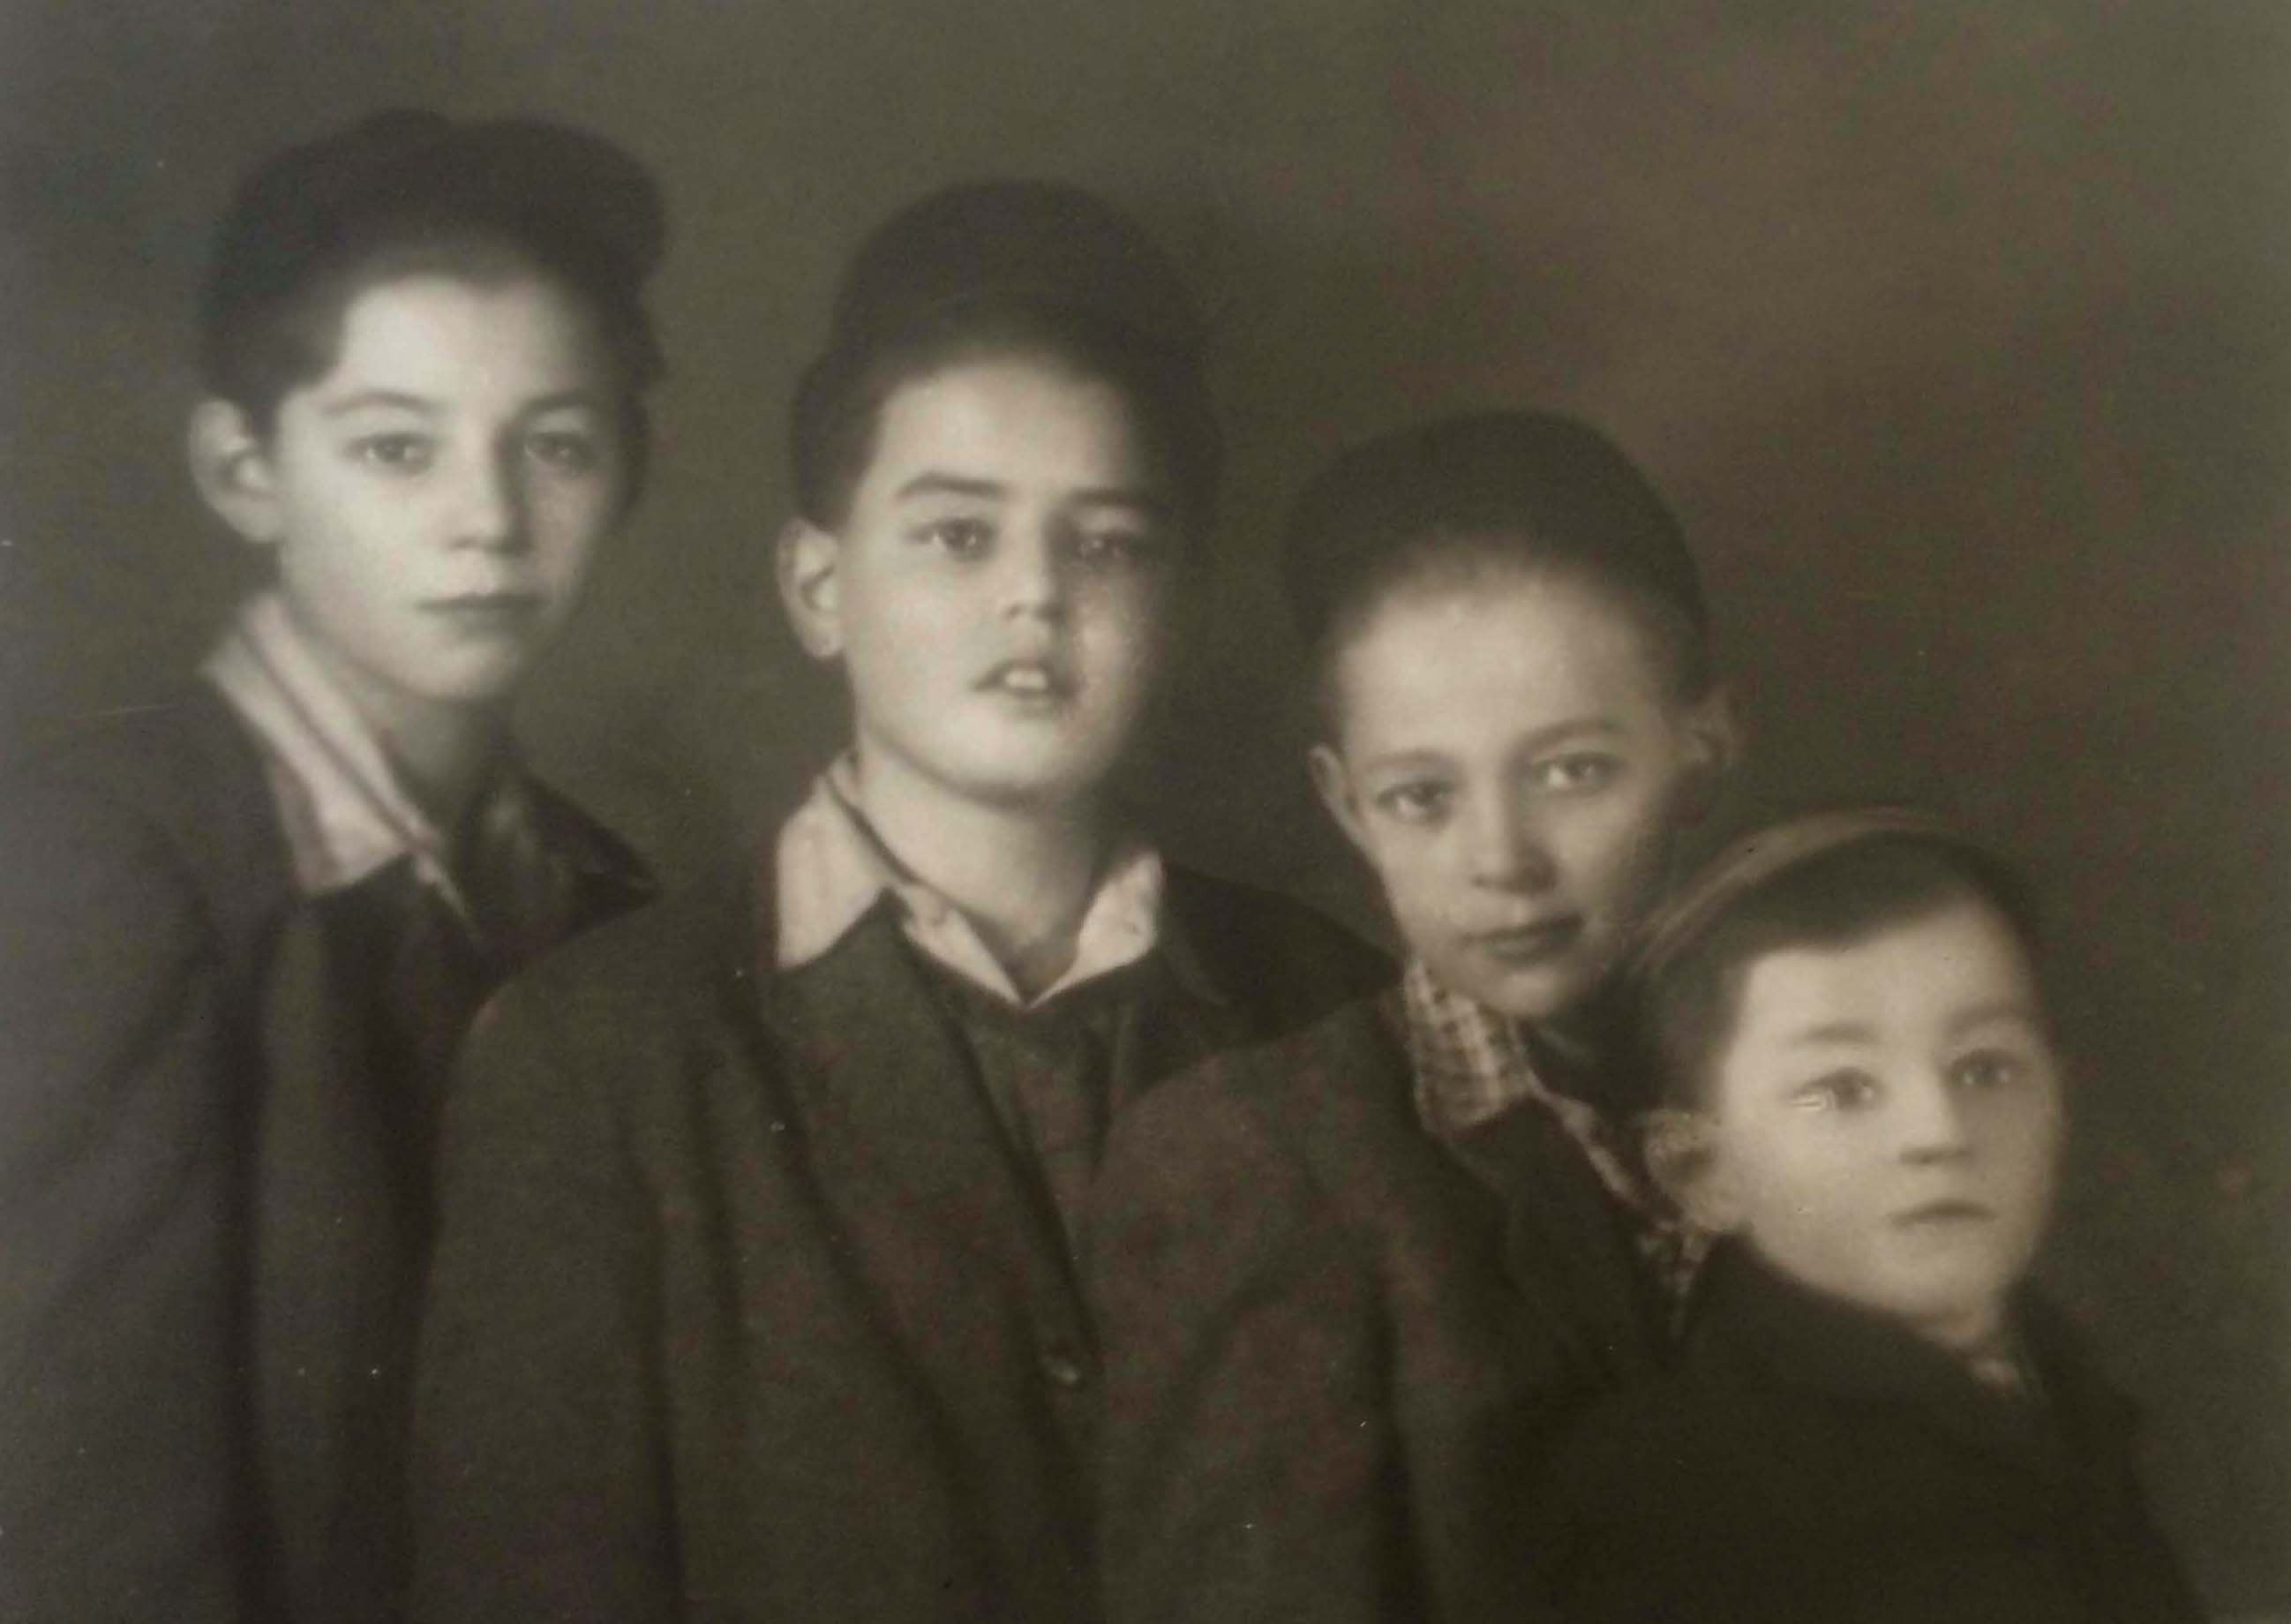 Inset: brothers (in order of age) Jehuda, George, Robert, and Paul Lindenblatt, still in Budapest circa 1950